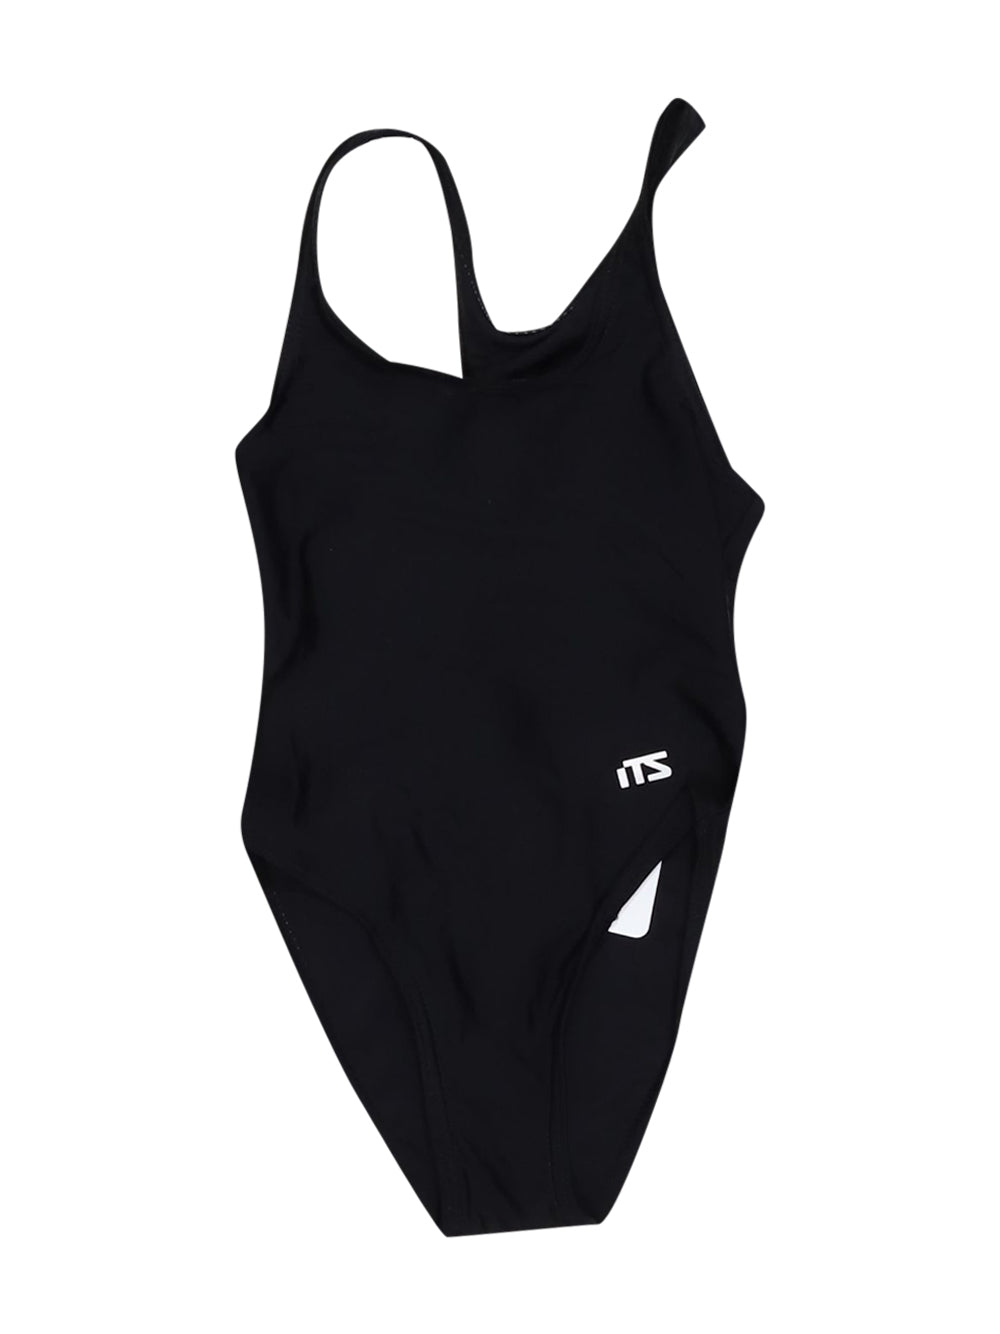 Front photo of Preloved it's Black Girl's swimsuit - size 2-3 yrs